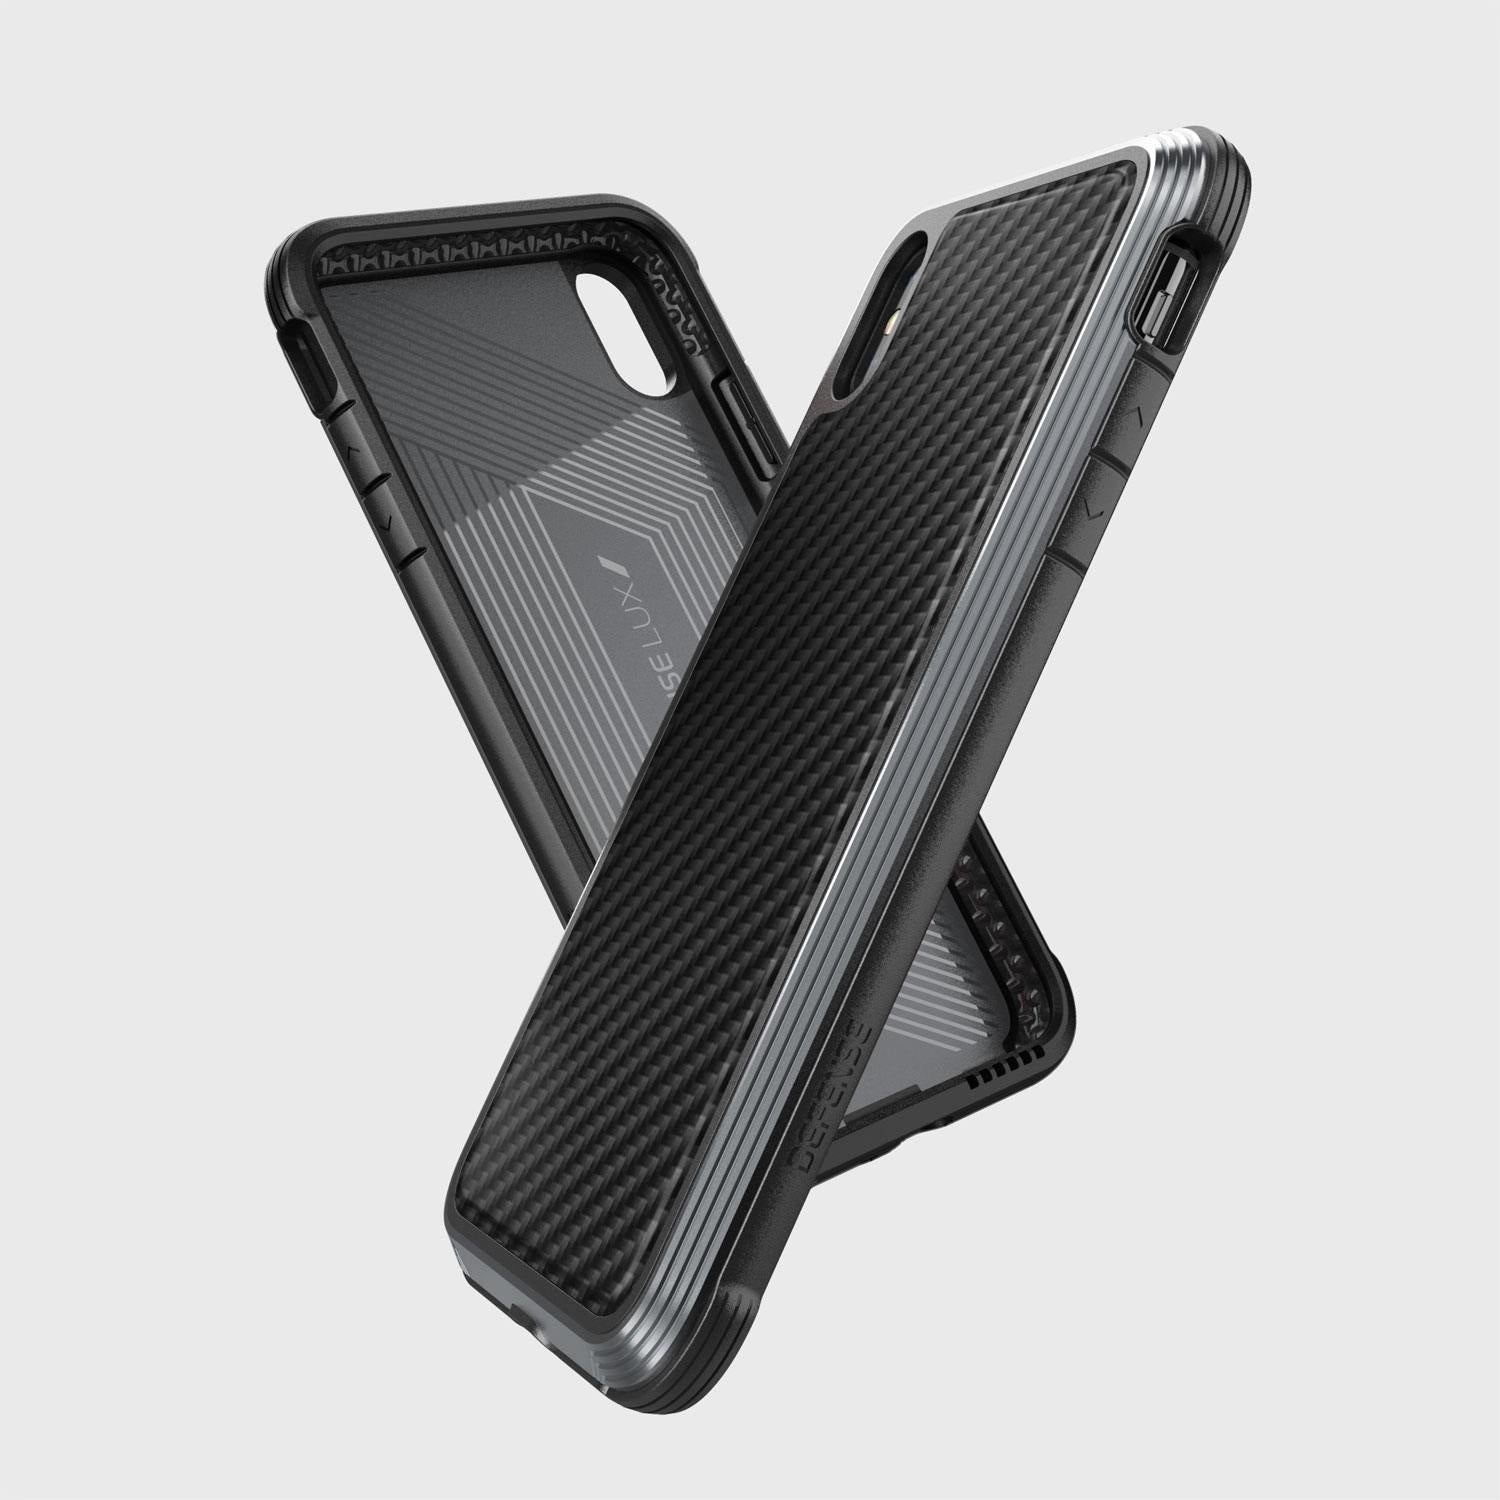 X-Doria Defense Lux Case Cover for Apple iPhone XS Max - Black Carbon Fiber - Armor King Case